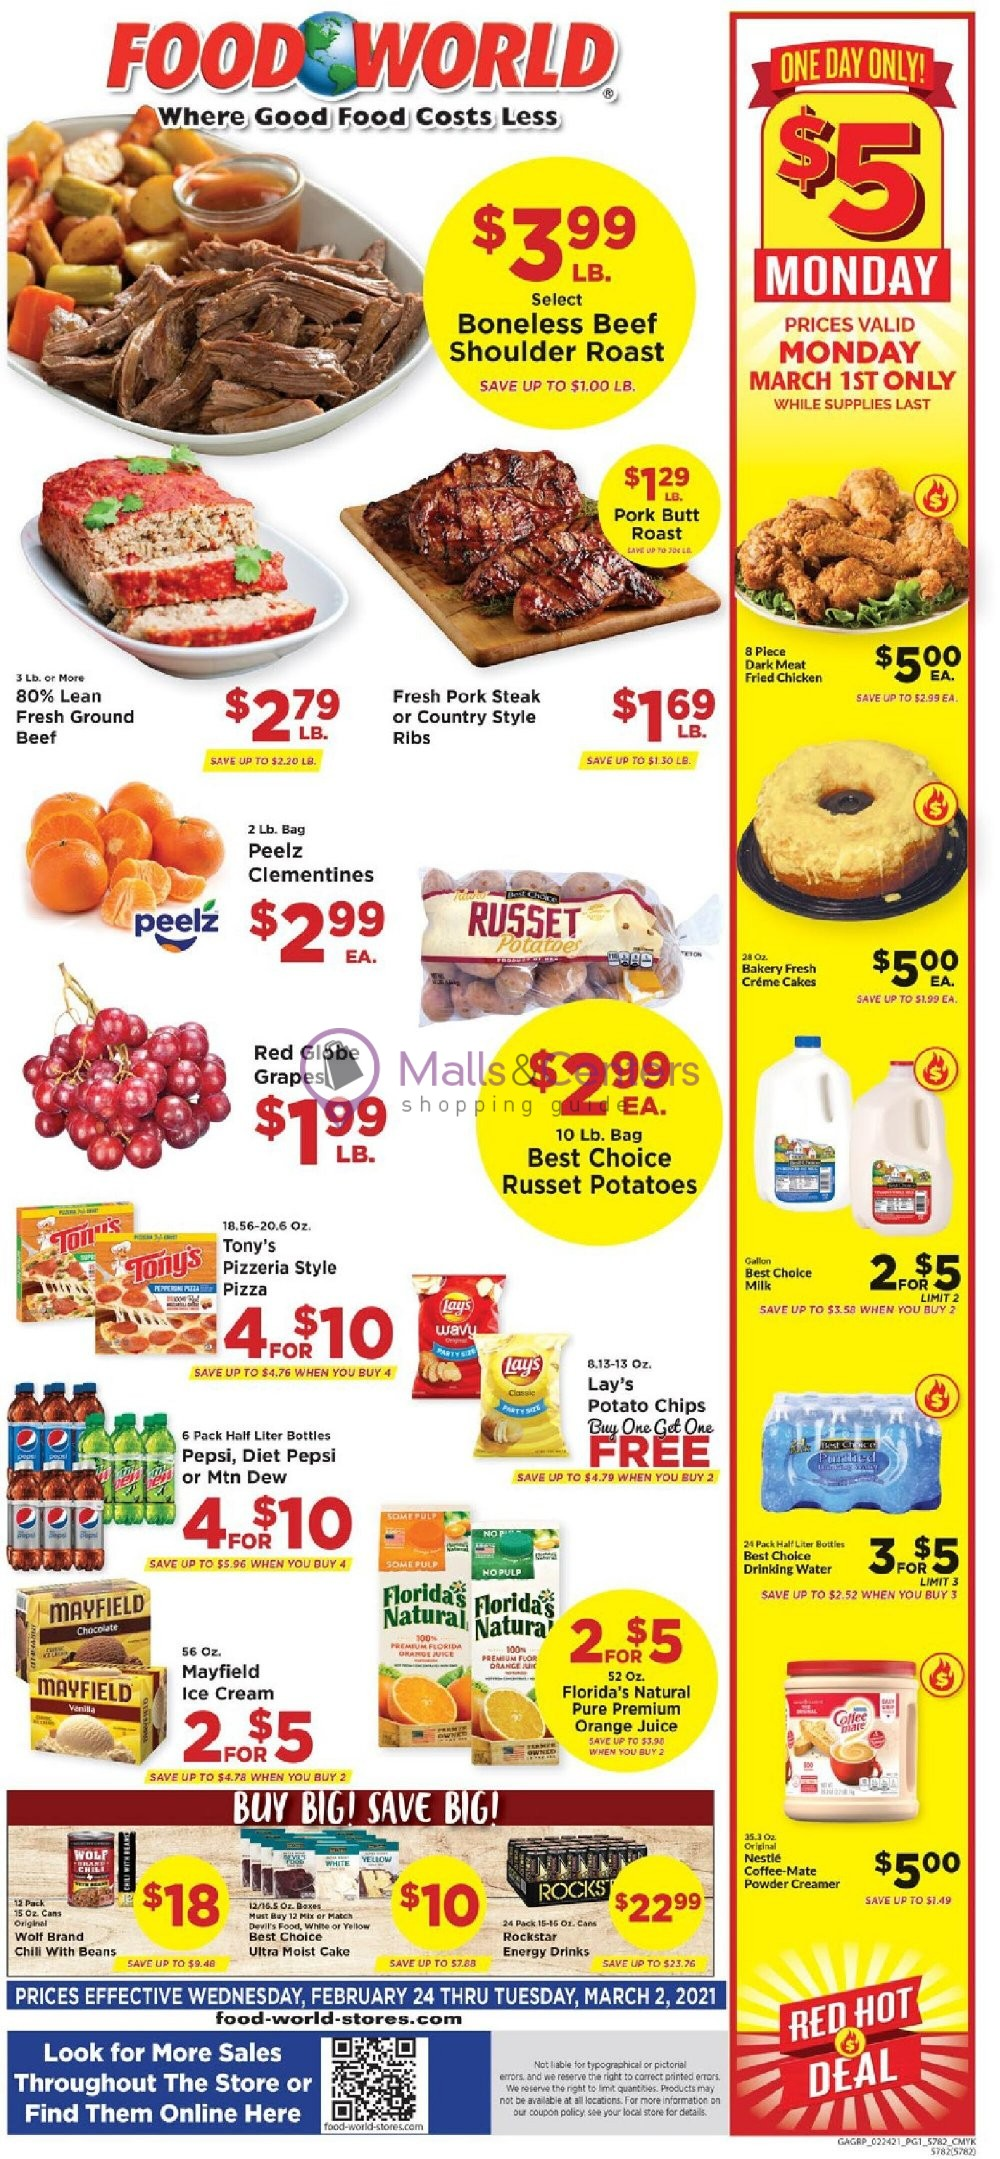 weekly ads Food World - page 1 - mallscenters.com